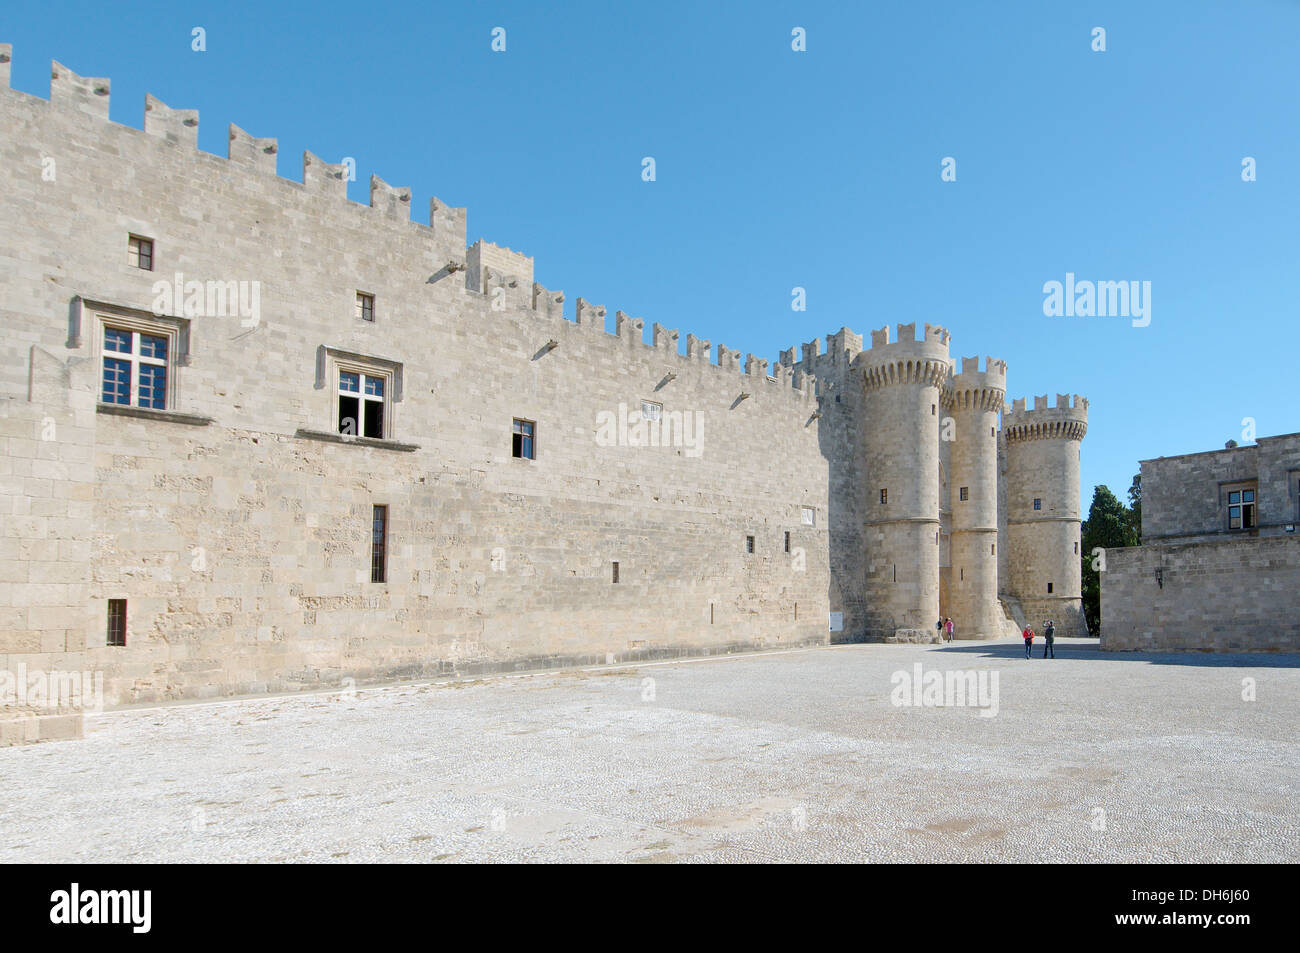 The fortress, island Rhodes, Greece - Stock Image